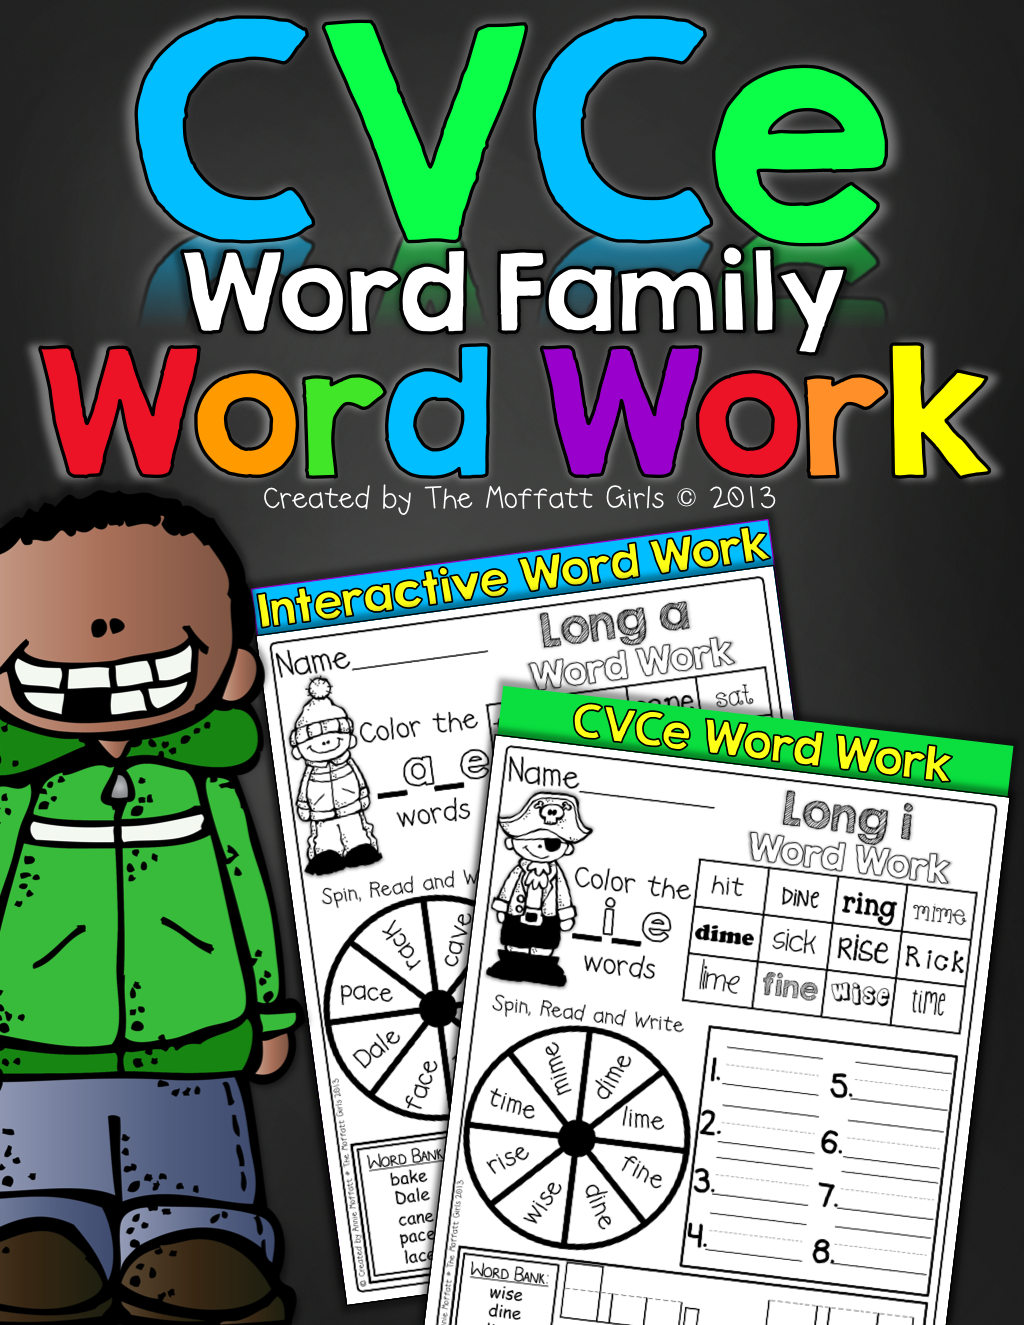 Cvce Word Family Word Work With Images